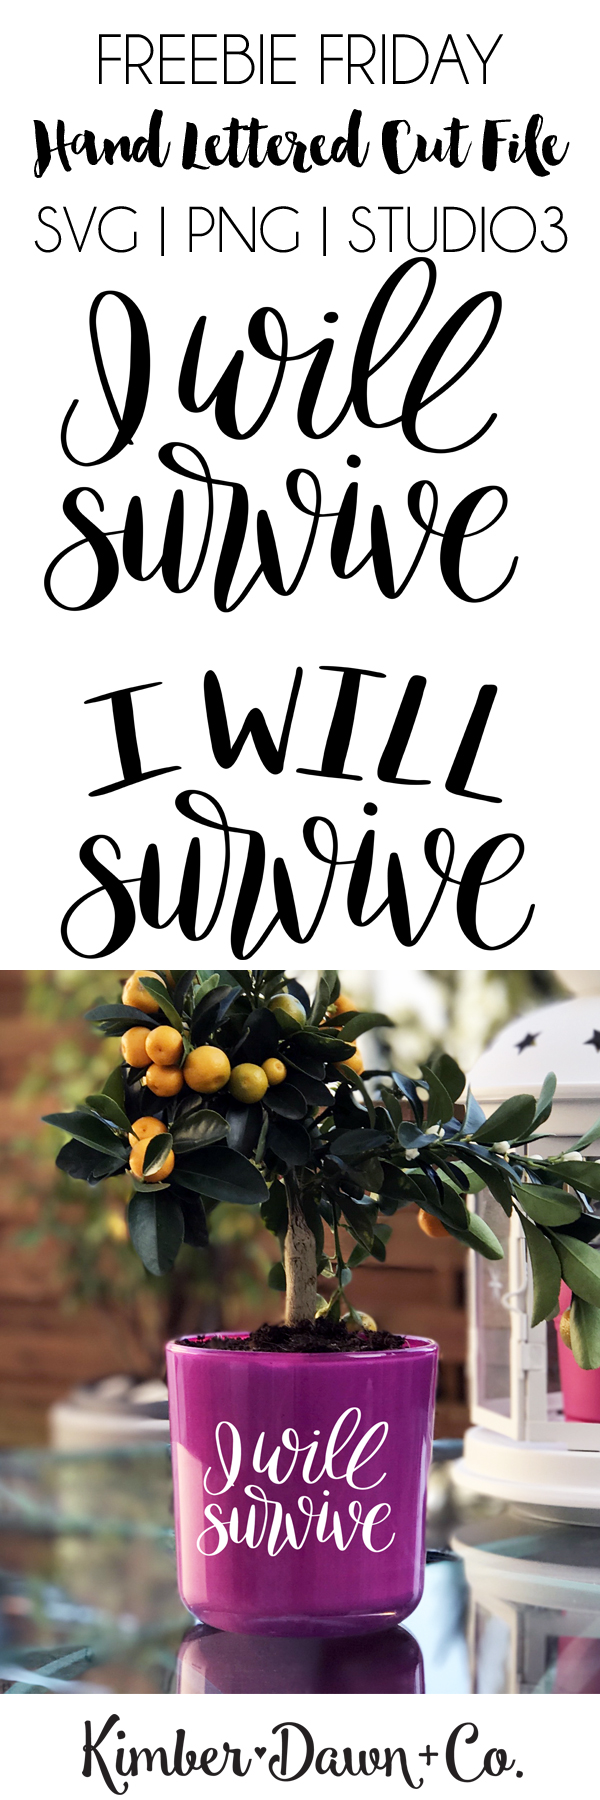 Hand Lettered I Will Survive Free SVG Cut File | KimberDawnCo.com